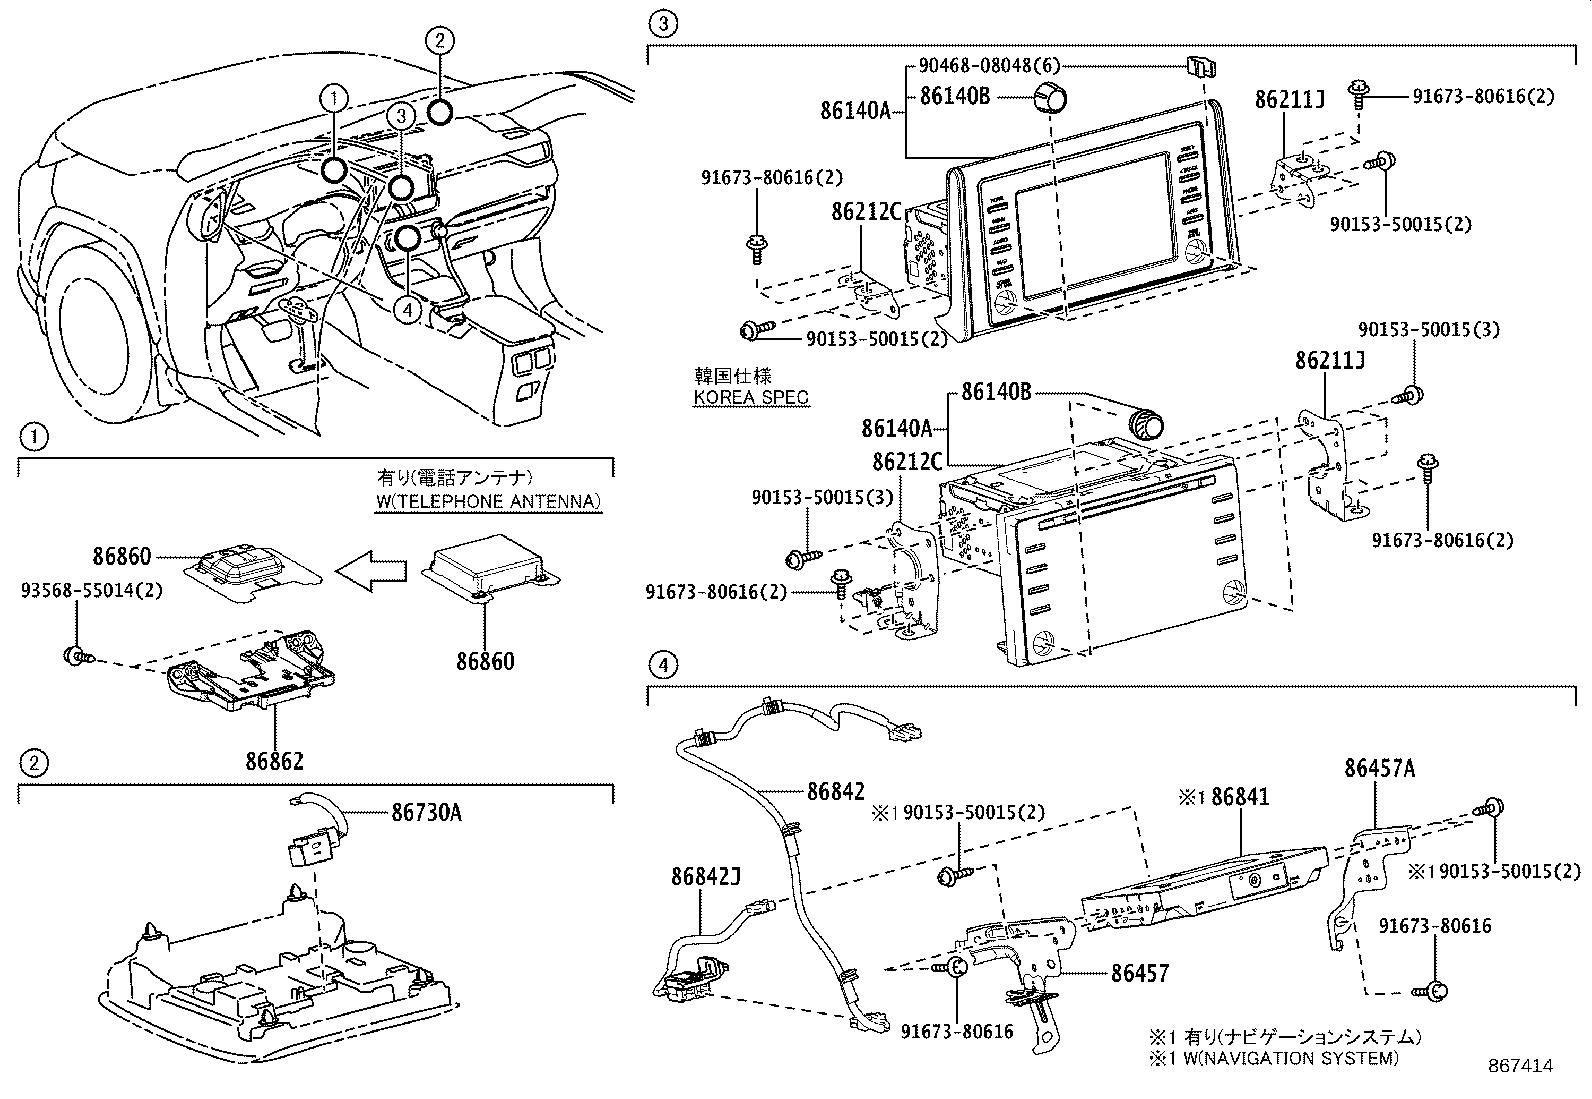 Toyota RAV4 Receiver assembly, radio & display. Electrical